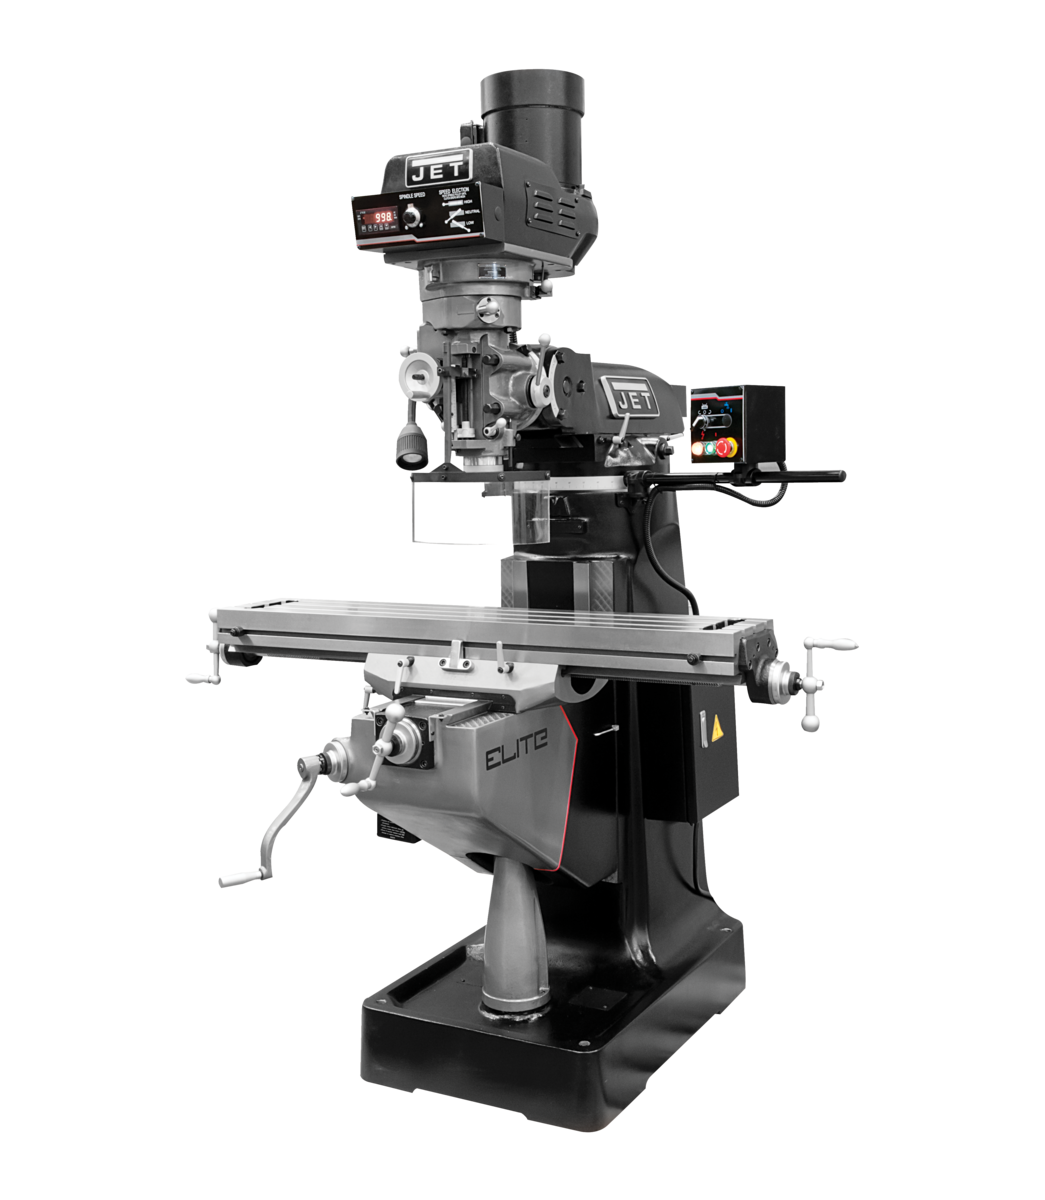 EVS-949 Mill with 3-Axis ACU-RITE 303 (Quill) DRO and X, Y-Axis JET Powerfeeds and USA Made Air Draw Bar